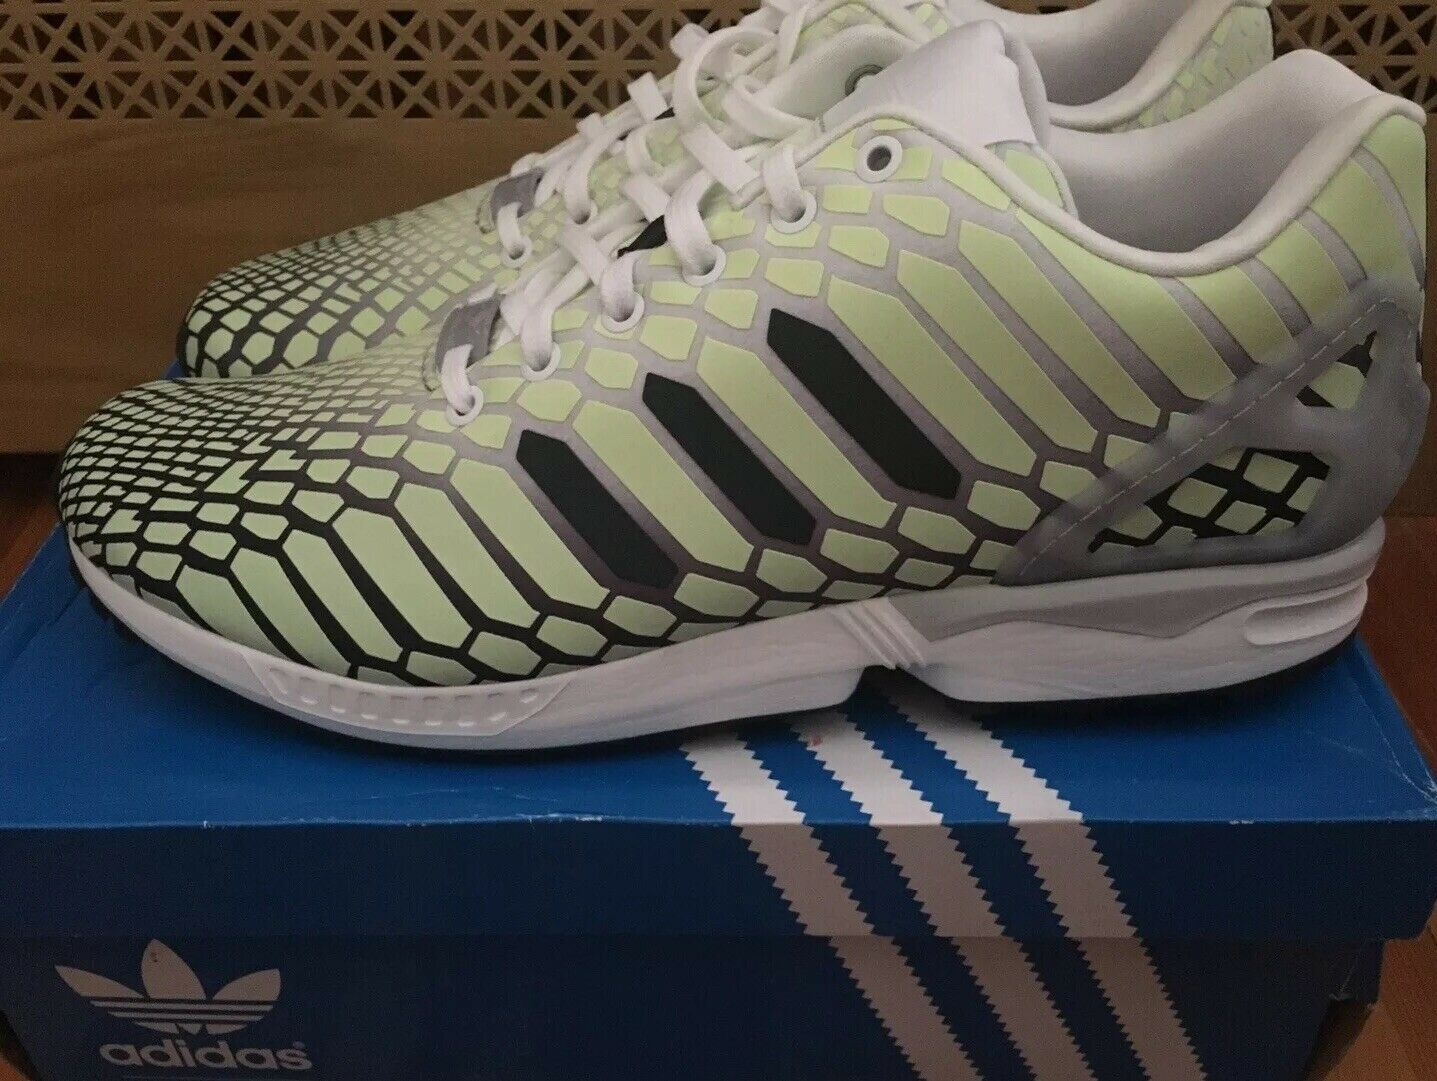 Adidas ZX Flux Xeno AQ4535 Glow Dark Torsion Marathon Running shoes Men's 11.5